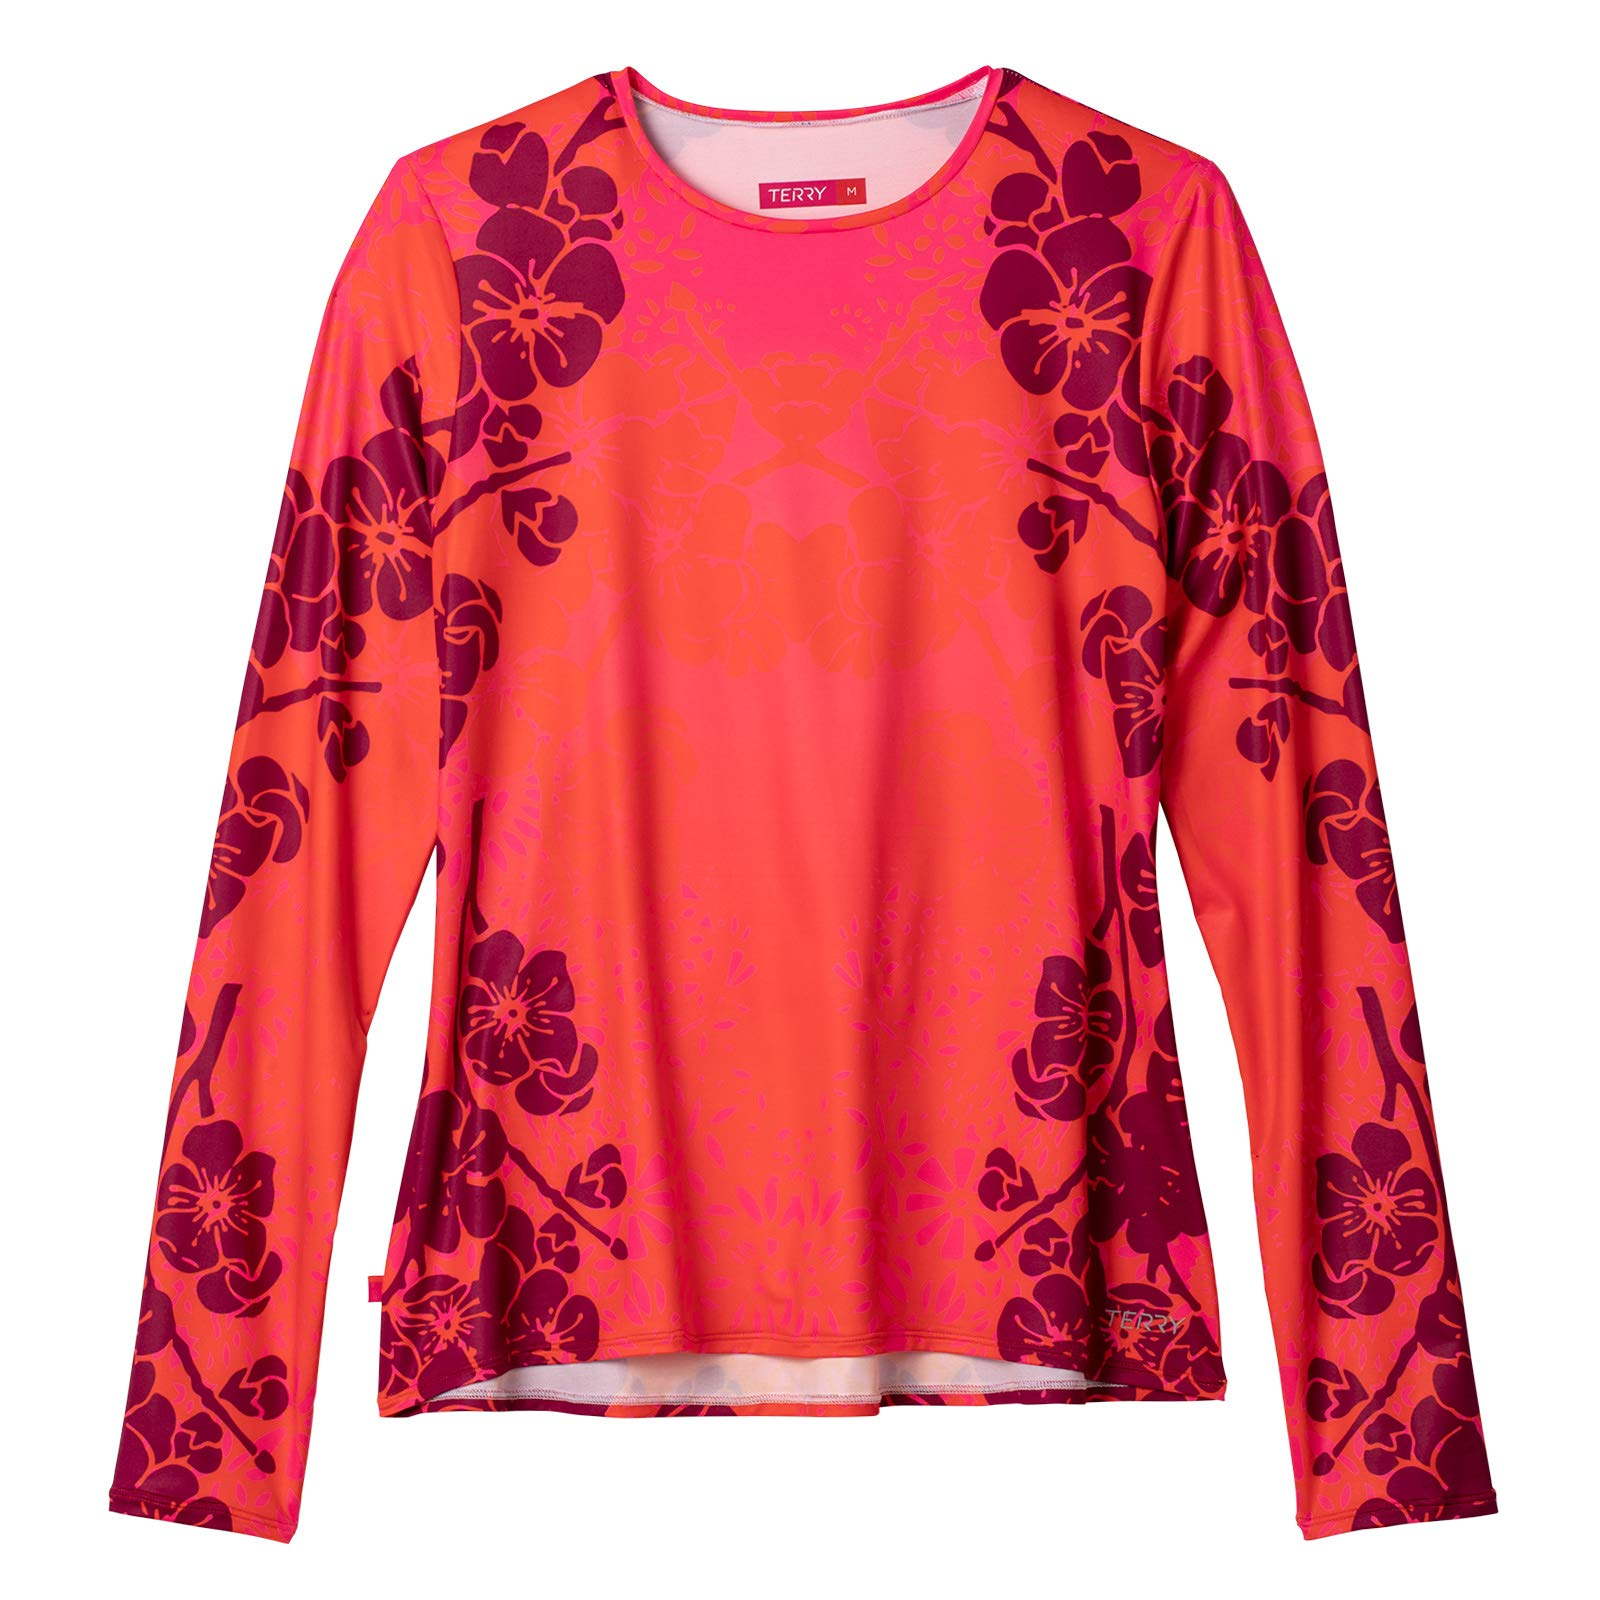 Terry Women's Soleil Flow Long Sleeve Athletic Top Loose Fit UPF 50+ Protection Lightweight - Haleakala - Large by Terry